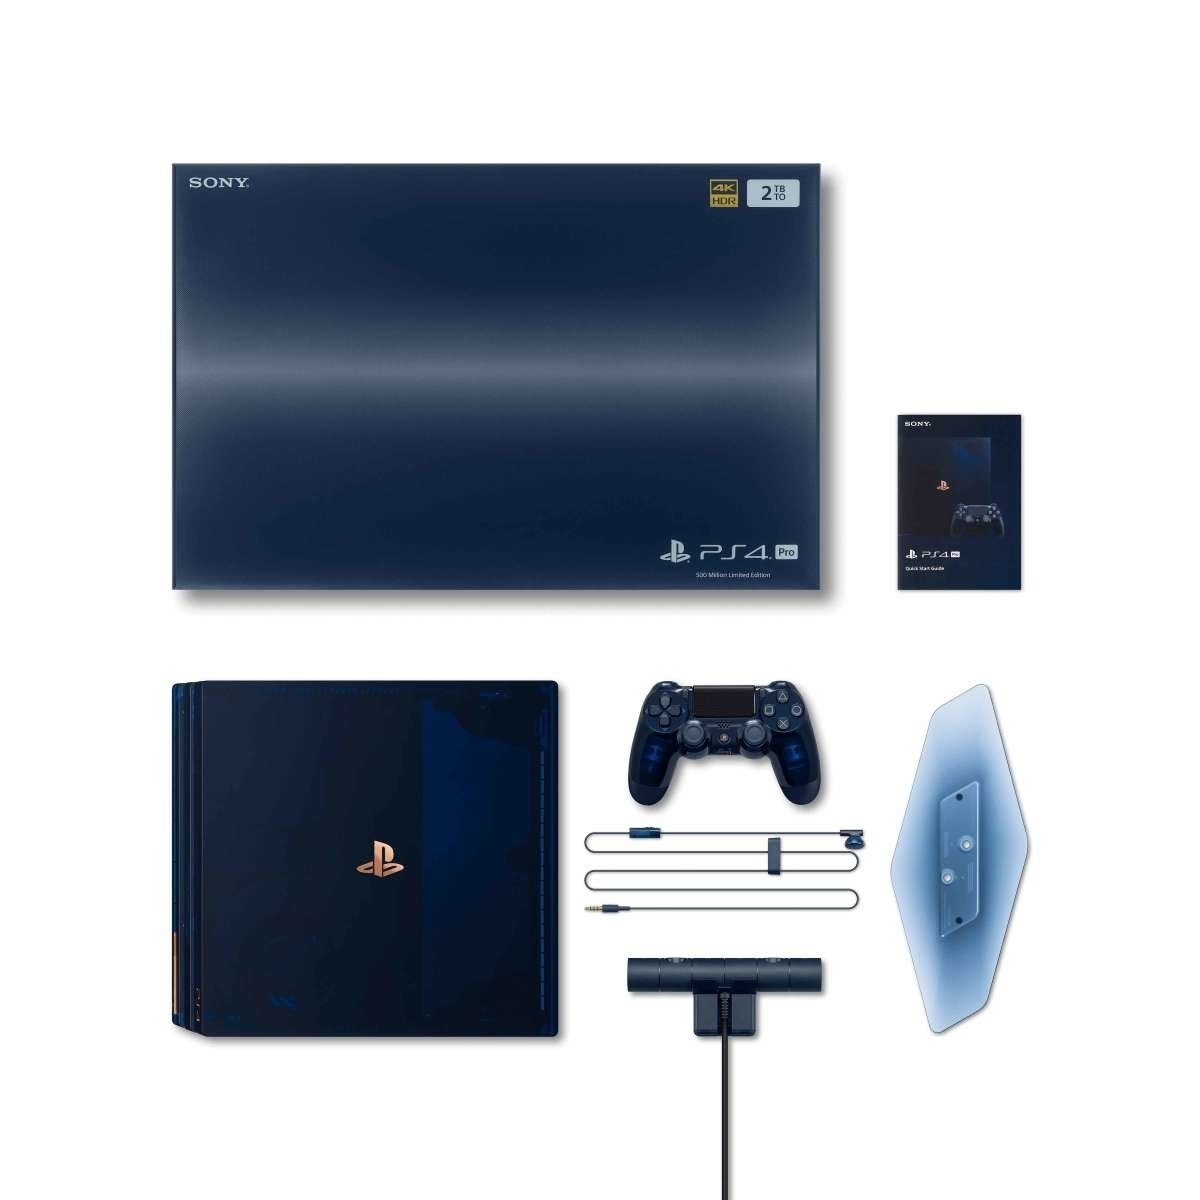 Sony PlayStation 4 Pro, Video Game Consoles, Sony Corporation, , PlayStation, Video Games, Sony PlayStation (Original), Sony DualShock 4, , Sony Interactive Entertainment, ps4 ™ pro 500 million limited edition, Gadget, Electronic device, Technology, Video game console, Playstation, Output device, Computer monitor accessory, Multimedia